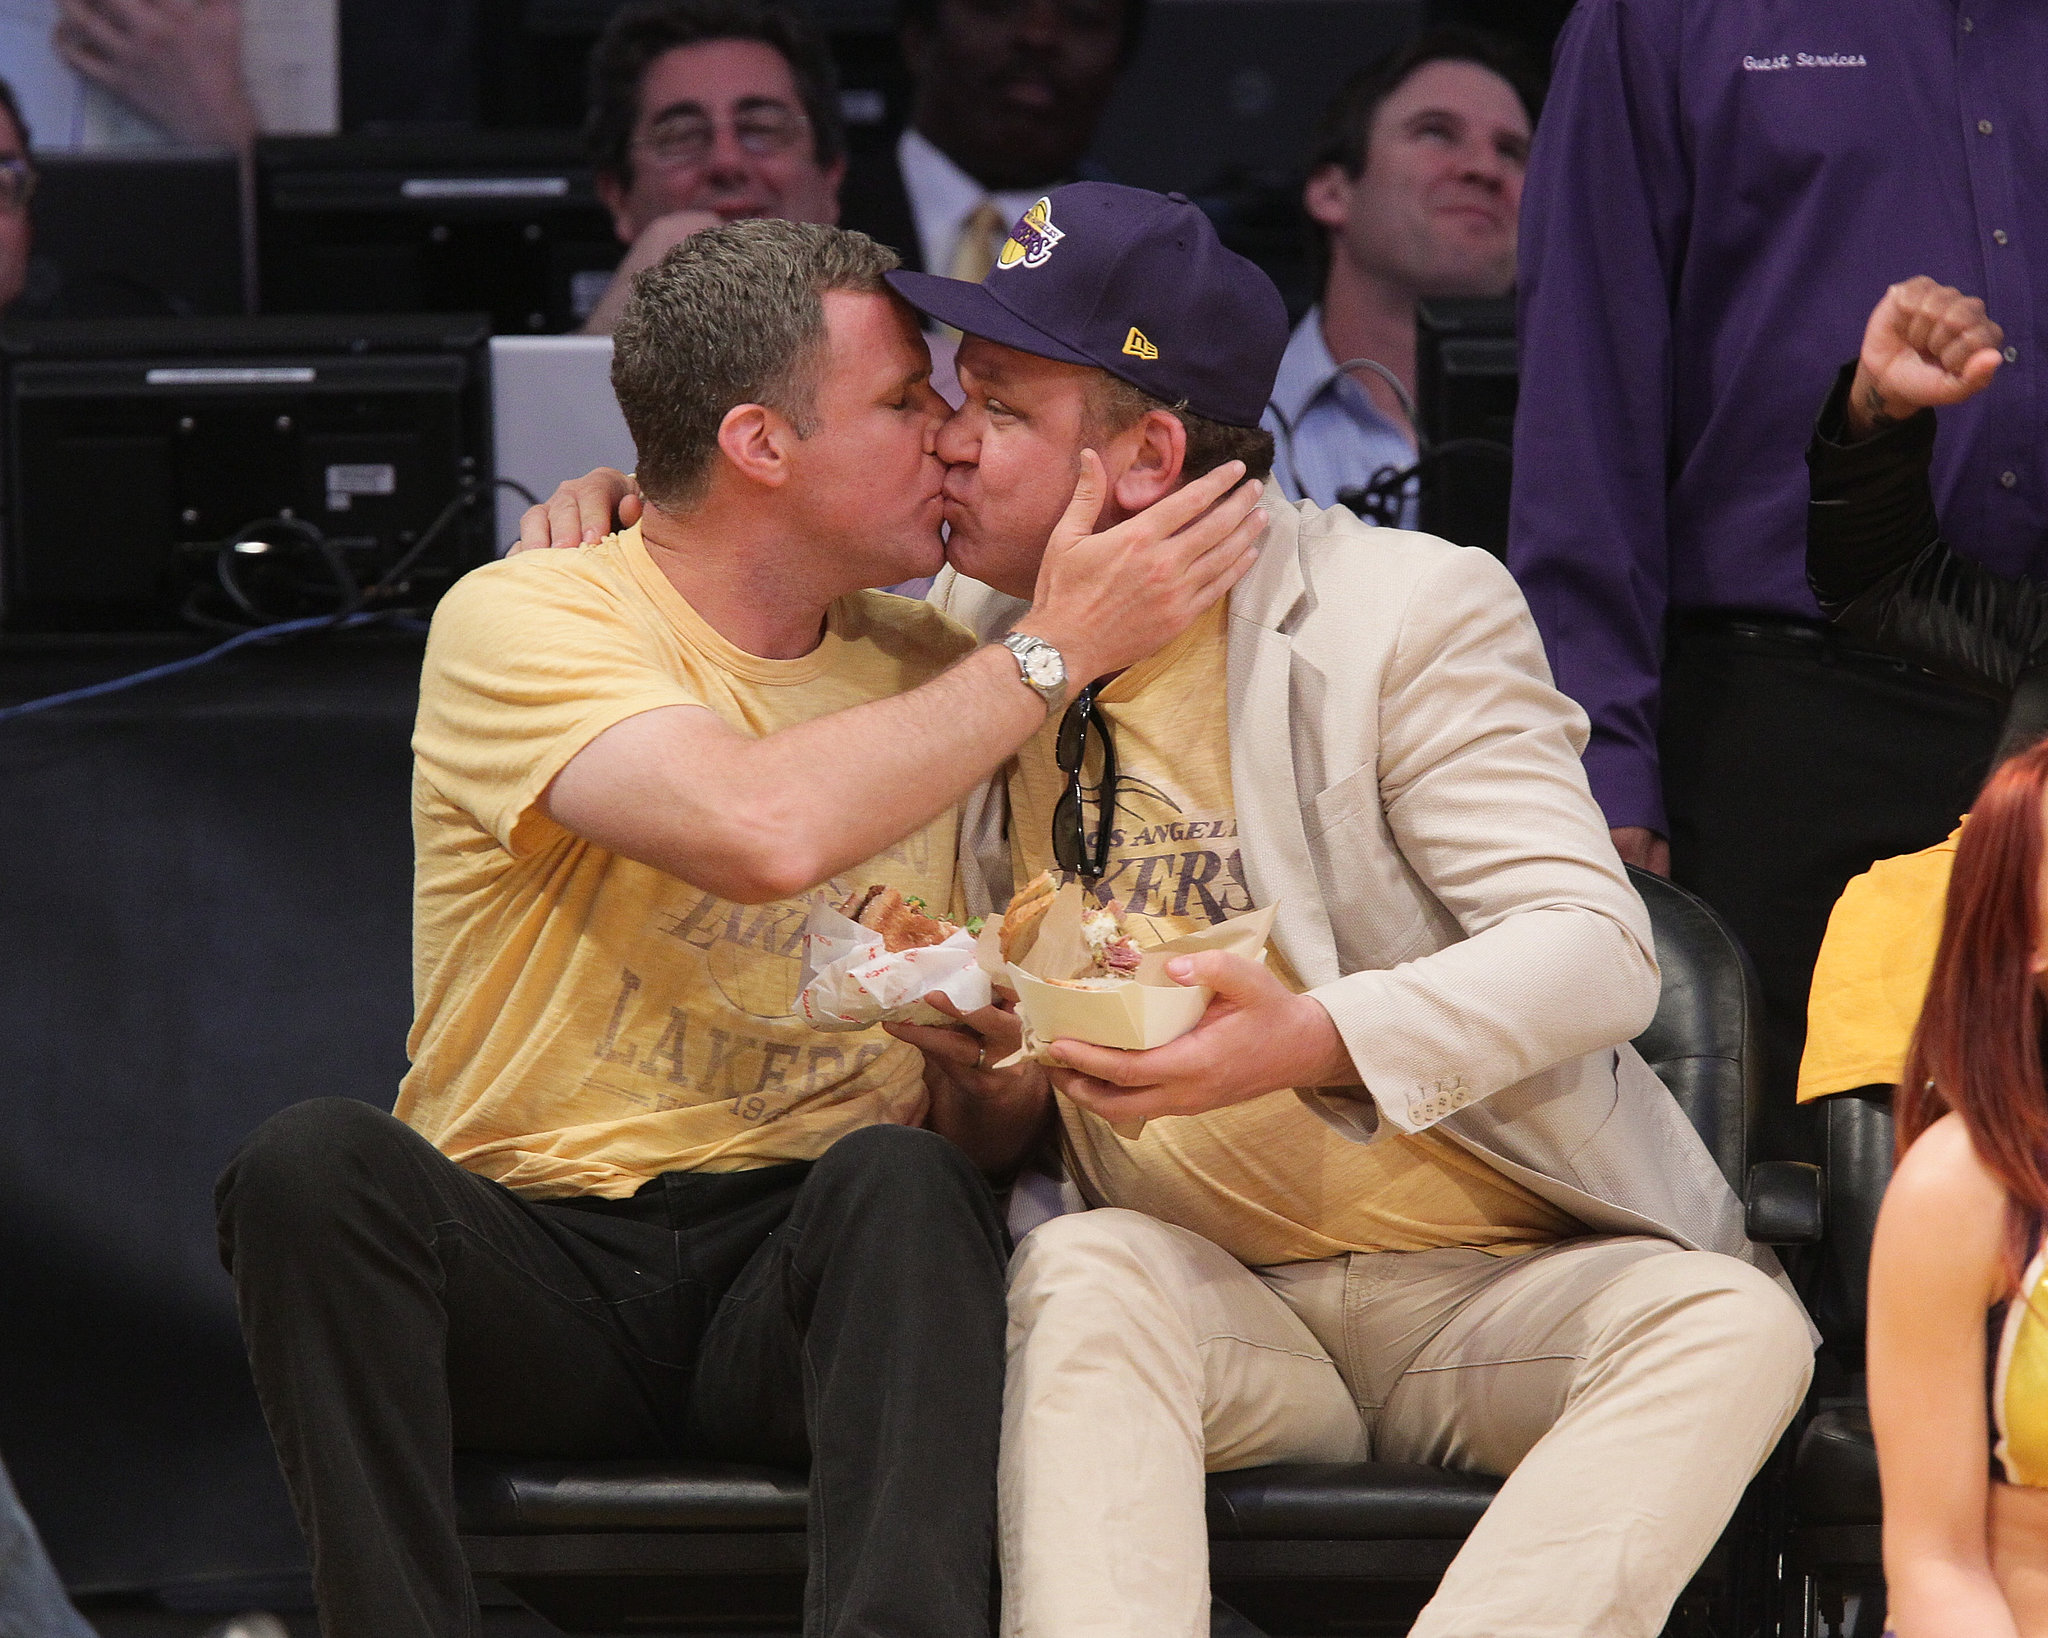 Will Ferrell and John C. Reilly have never been shy about their relationship. The two have starred in several movies together, including Talladega Nights, and Step Brothers, and at a Lakers game in 2011, they showed some PDA on the kiss cam.